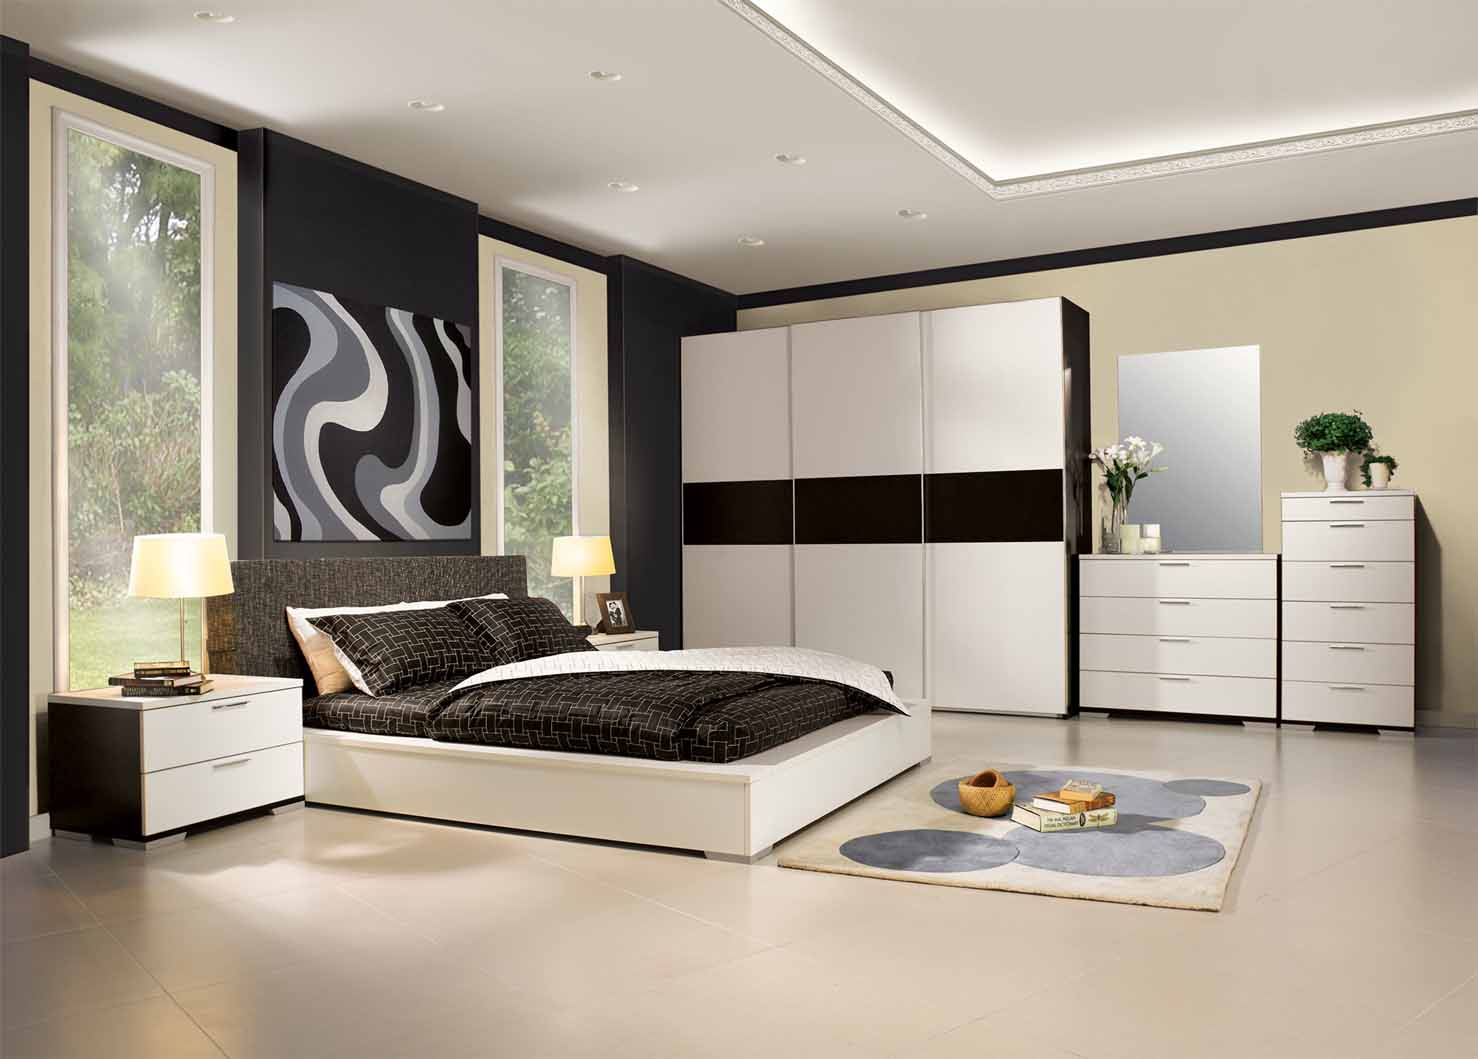 Modern black bedroom furniture popular interior house ideas for Innovative bedroom designs